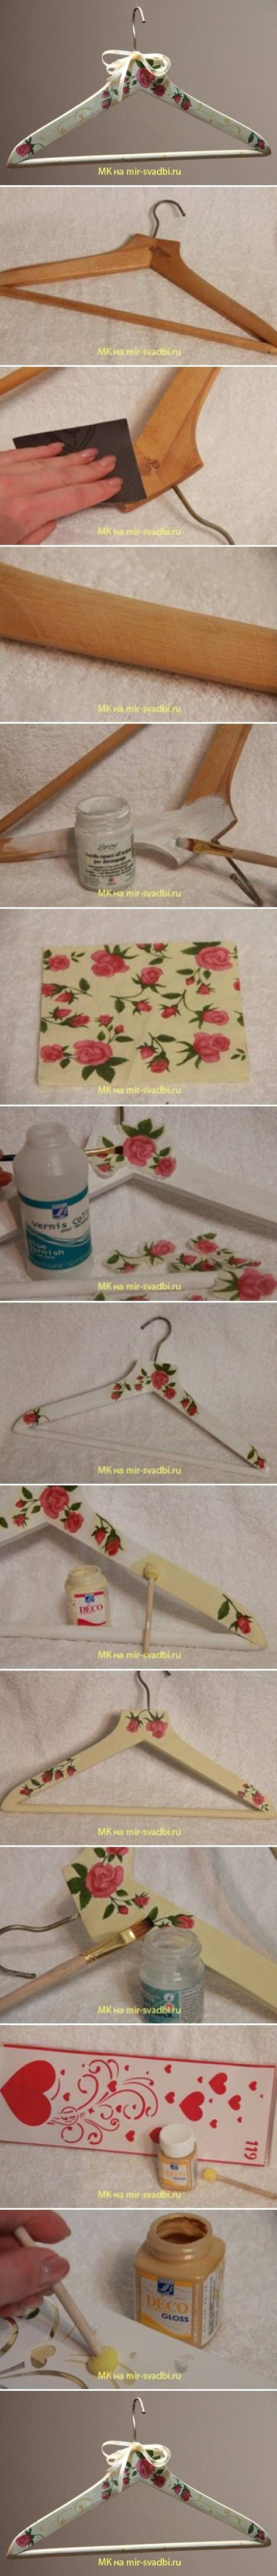 DIY Hanger Decoupage DIY Projects | UsefulDIY.com